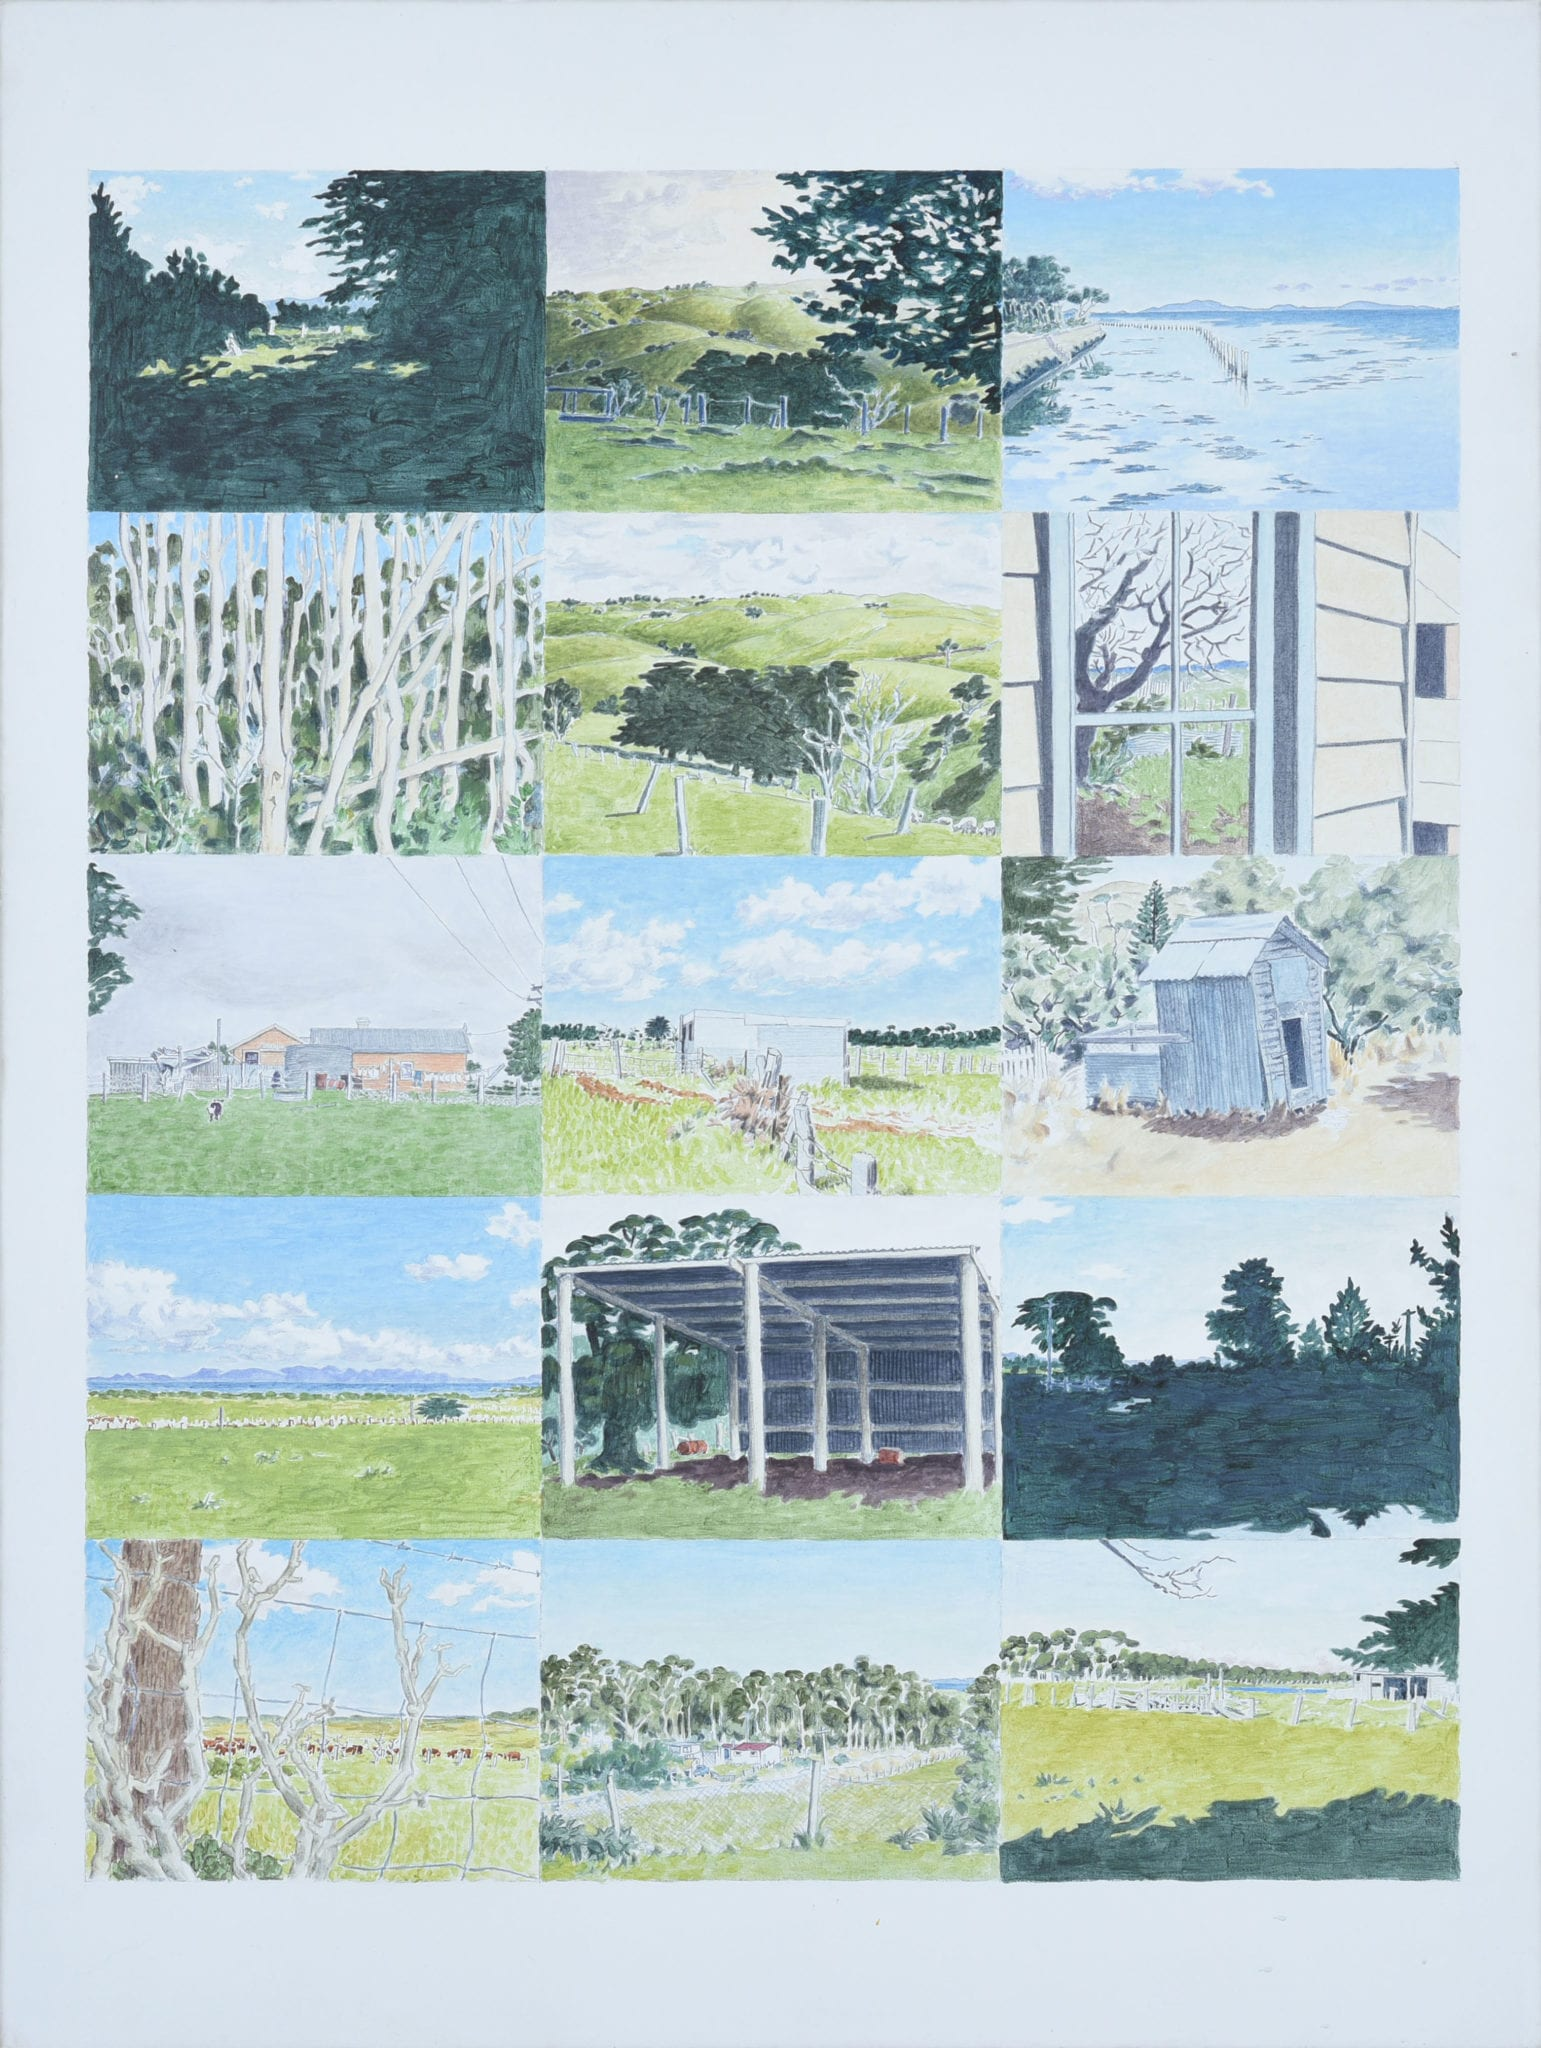 Mike Brown, Fifteen Views of Gippsland, Acrylic on canvas, 102 x 81 cm image size. Latrobe Regional Gallery Collection